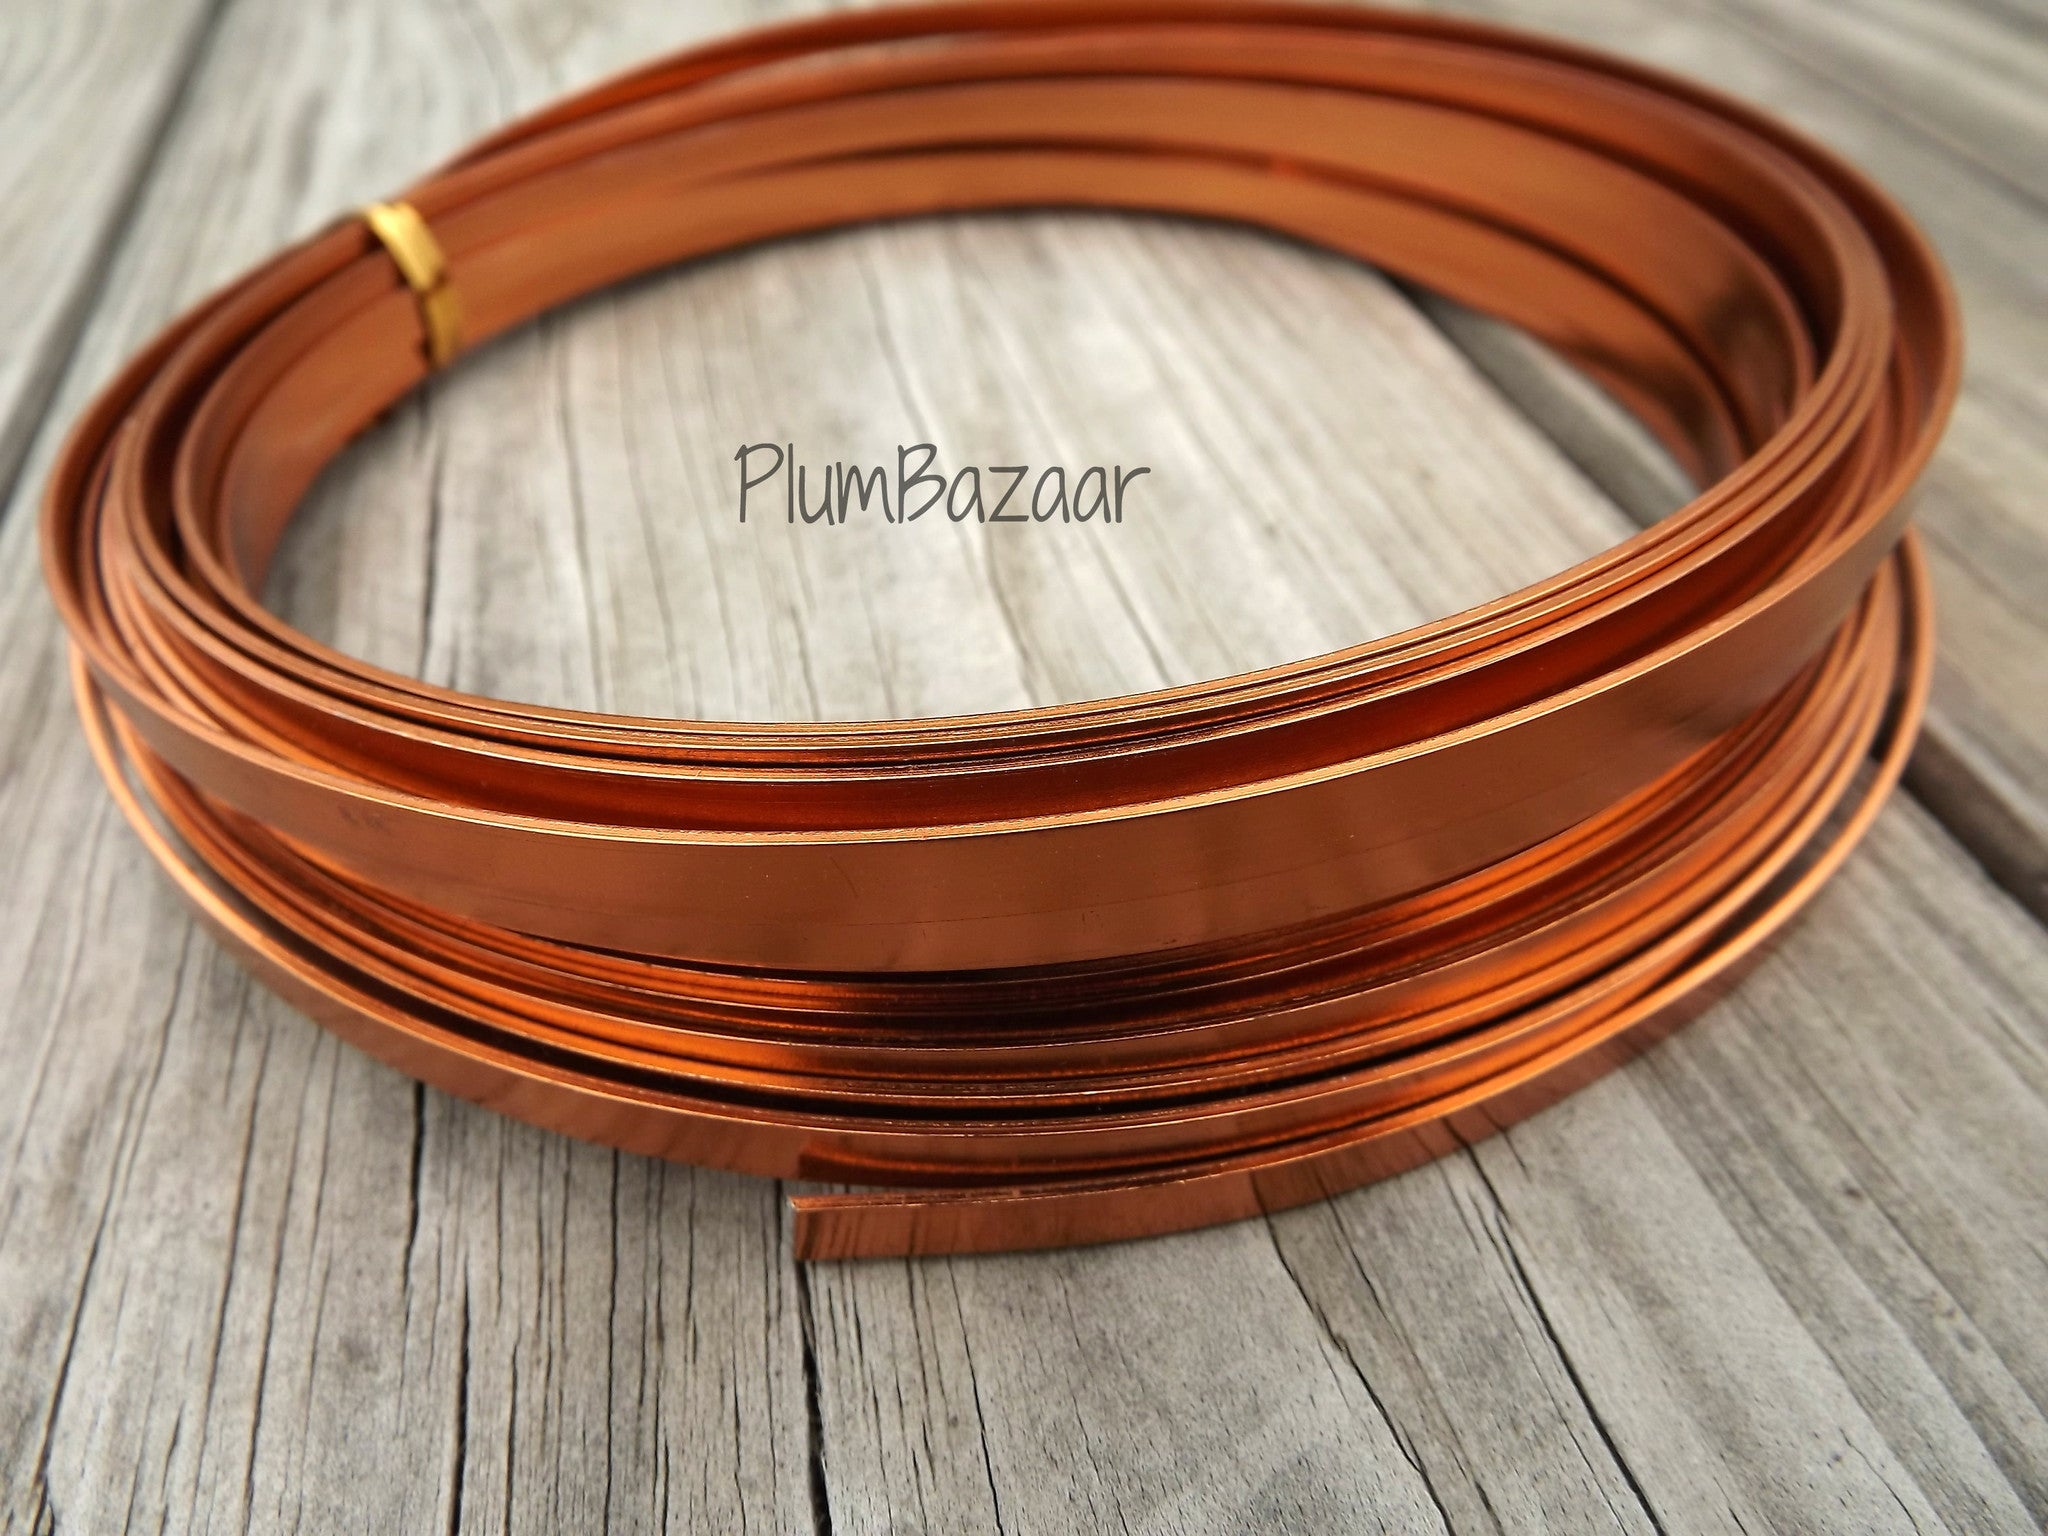 Aluminum wire for jewelry or crafts, 5mm flat, 24 ft. coil, copper ...